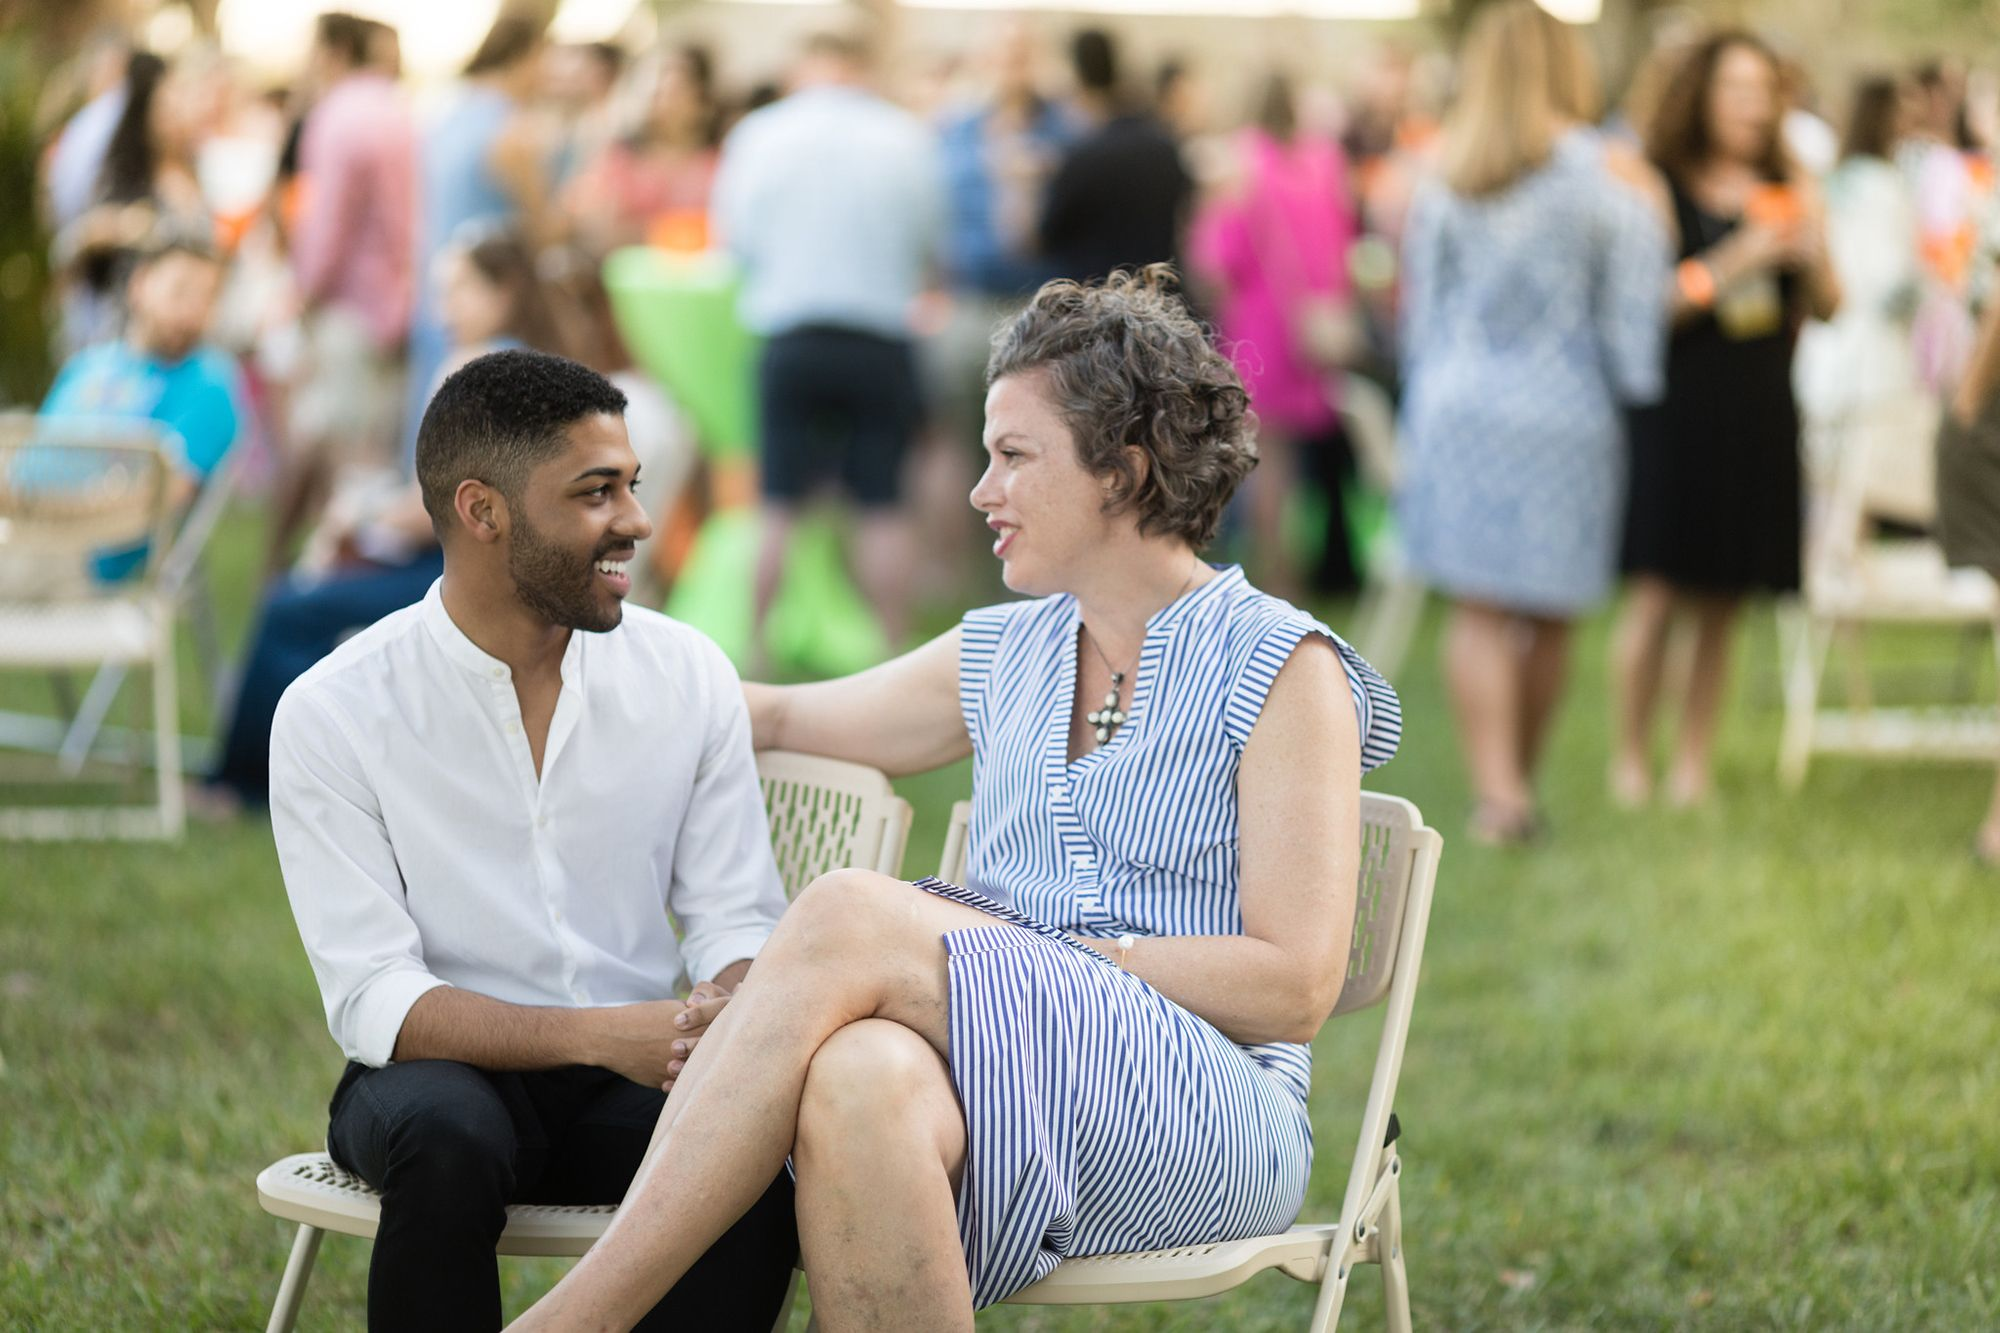 Two students sitting and talking to each other at an outdoor event on the lawn.